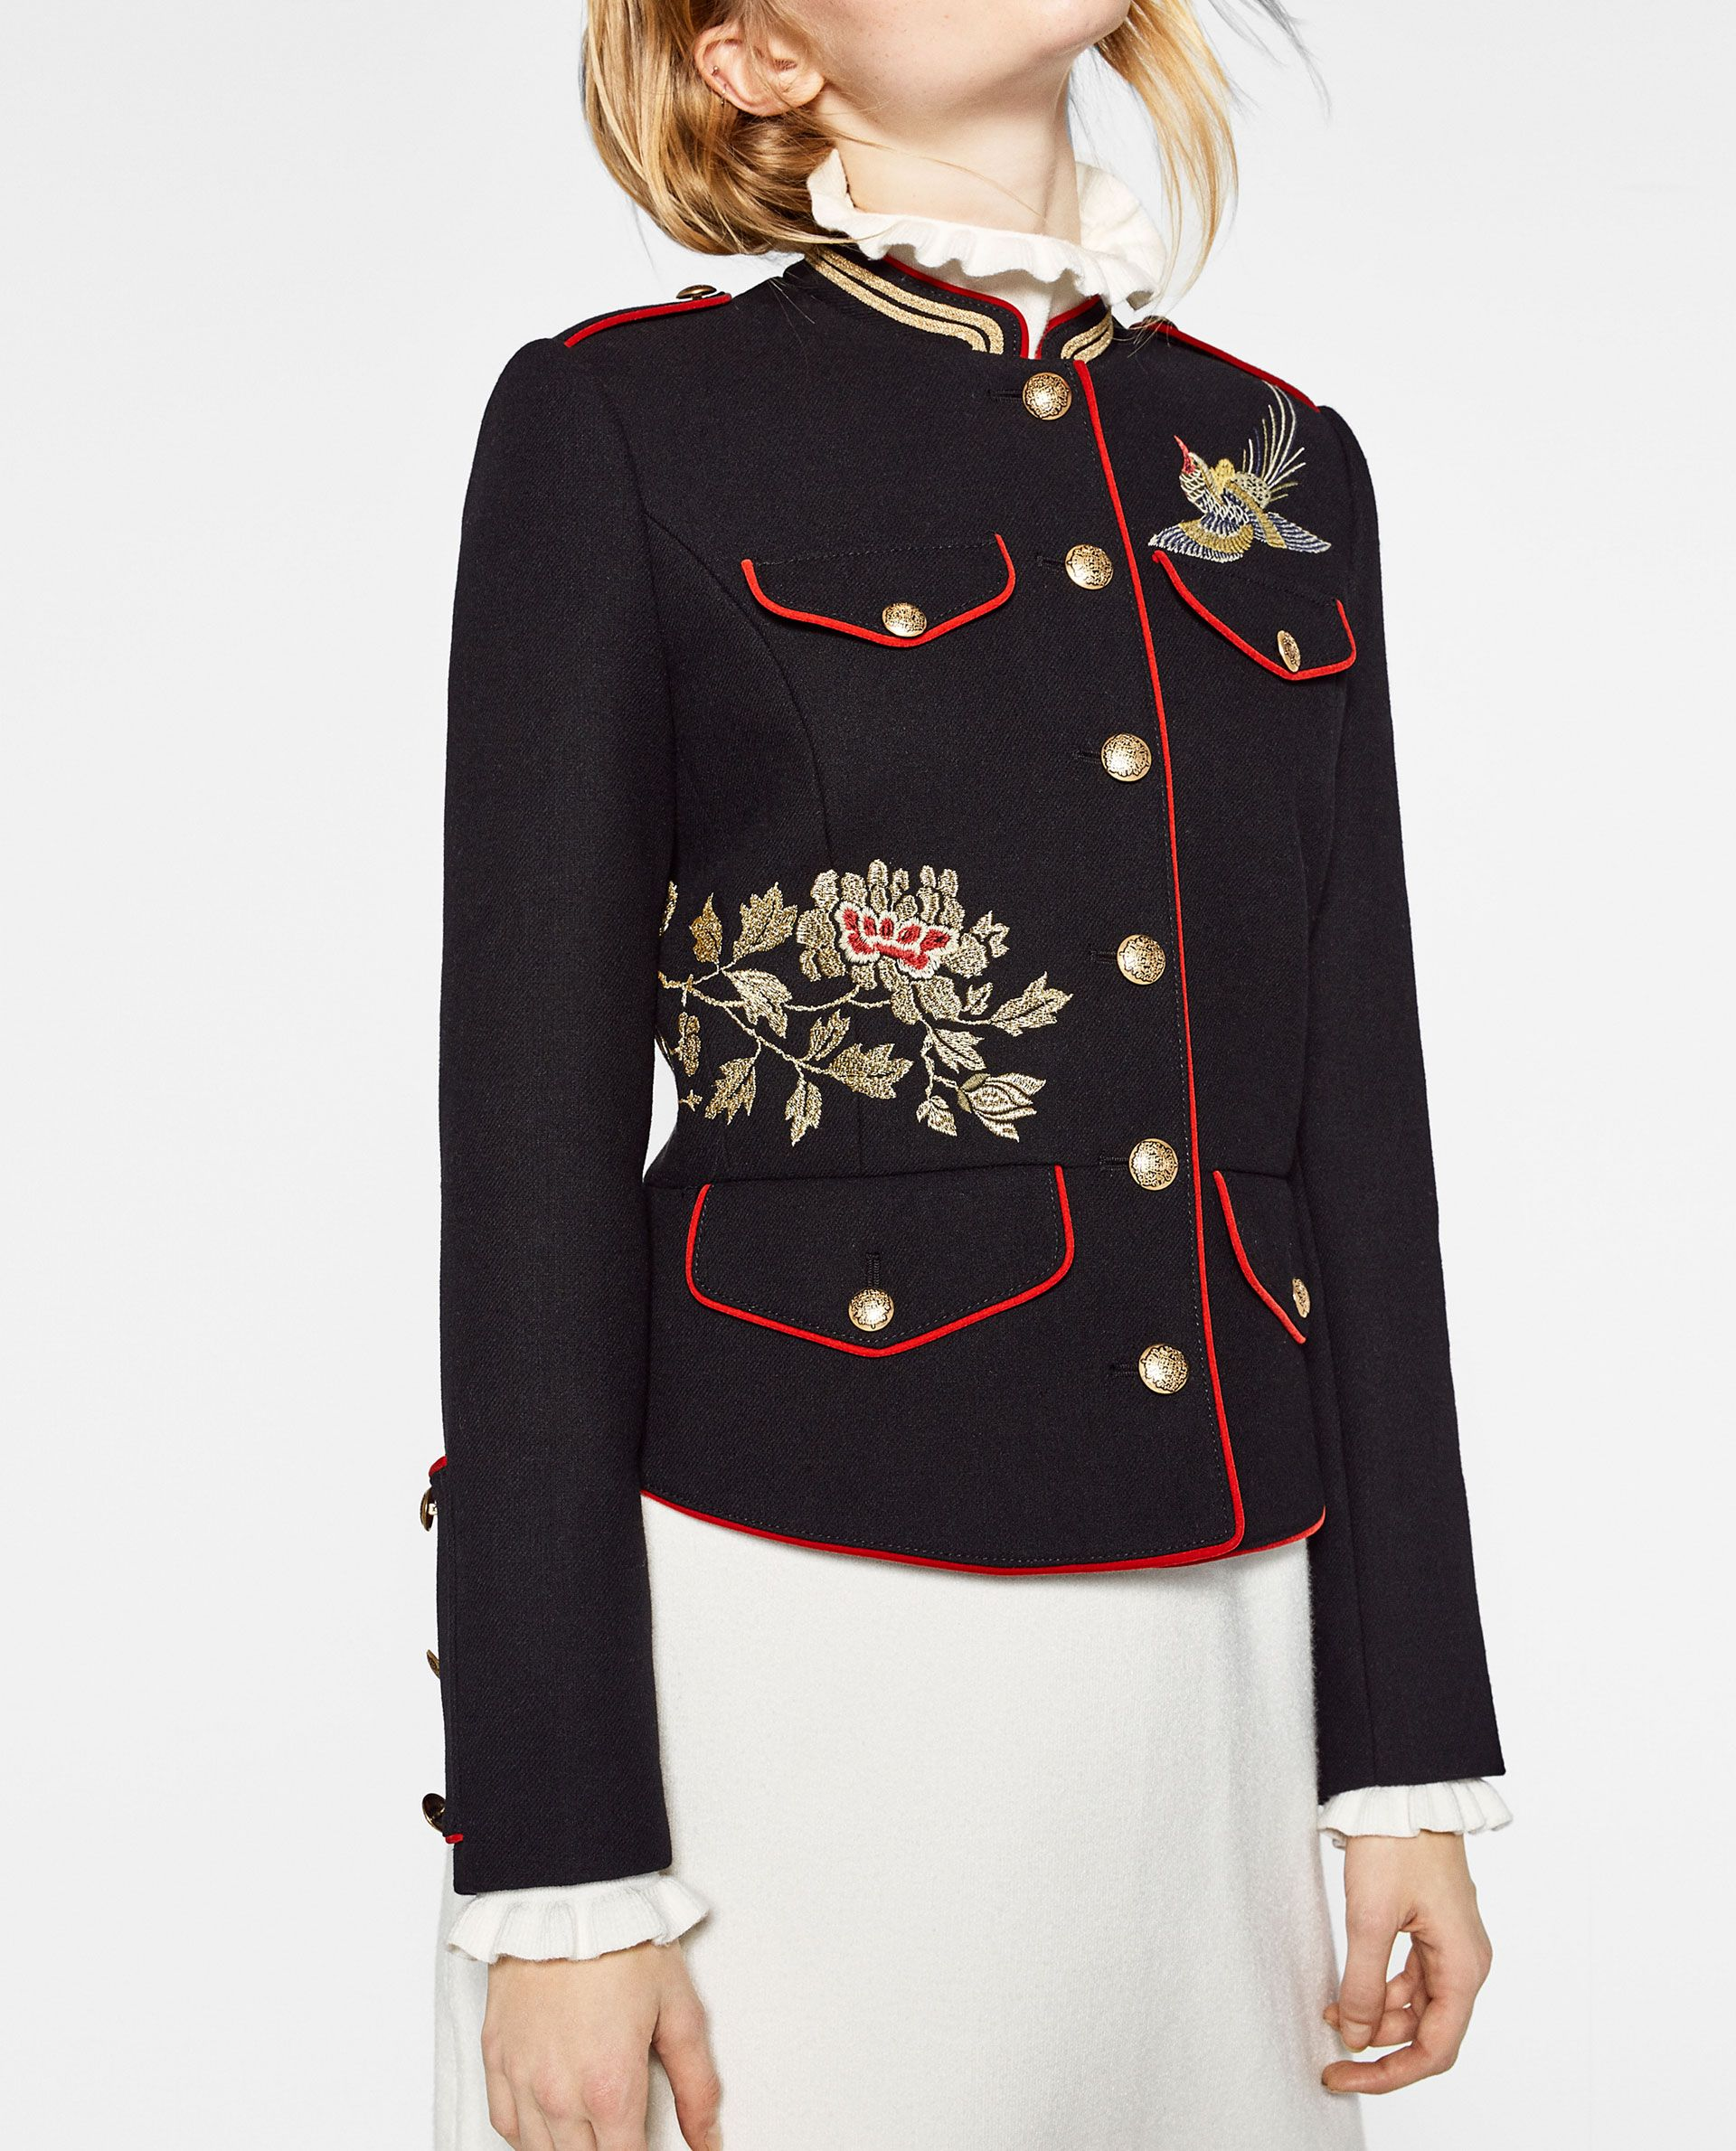 Jacket with embroidery get up pinterest